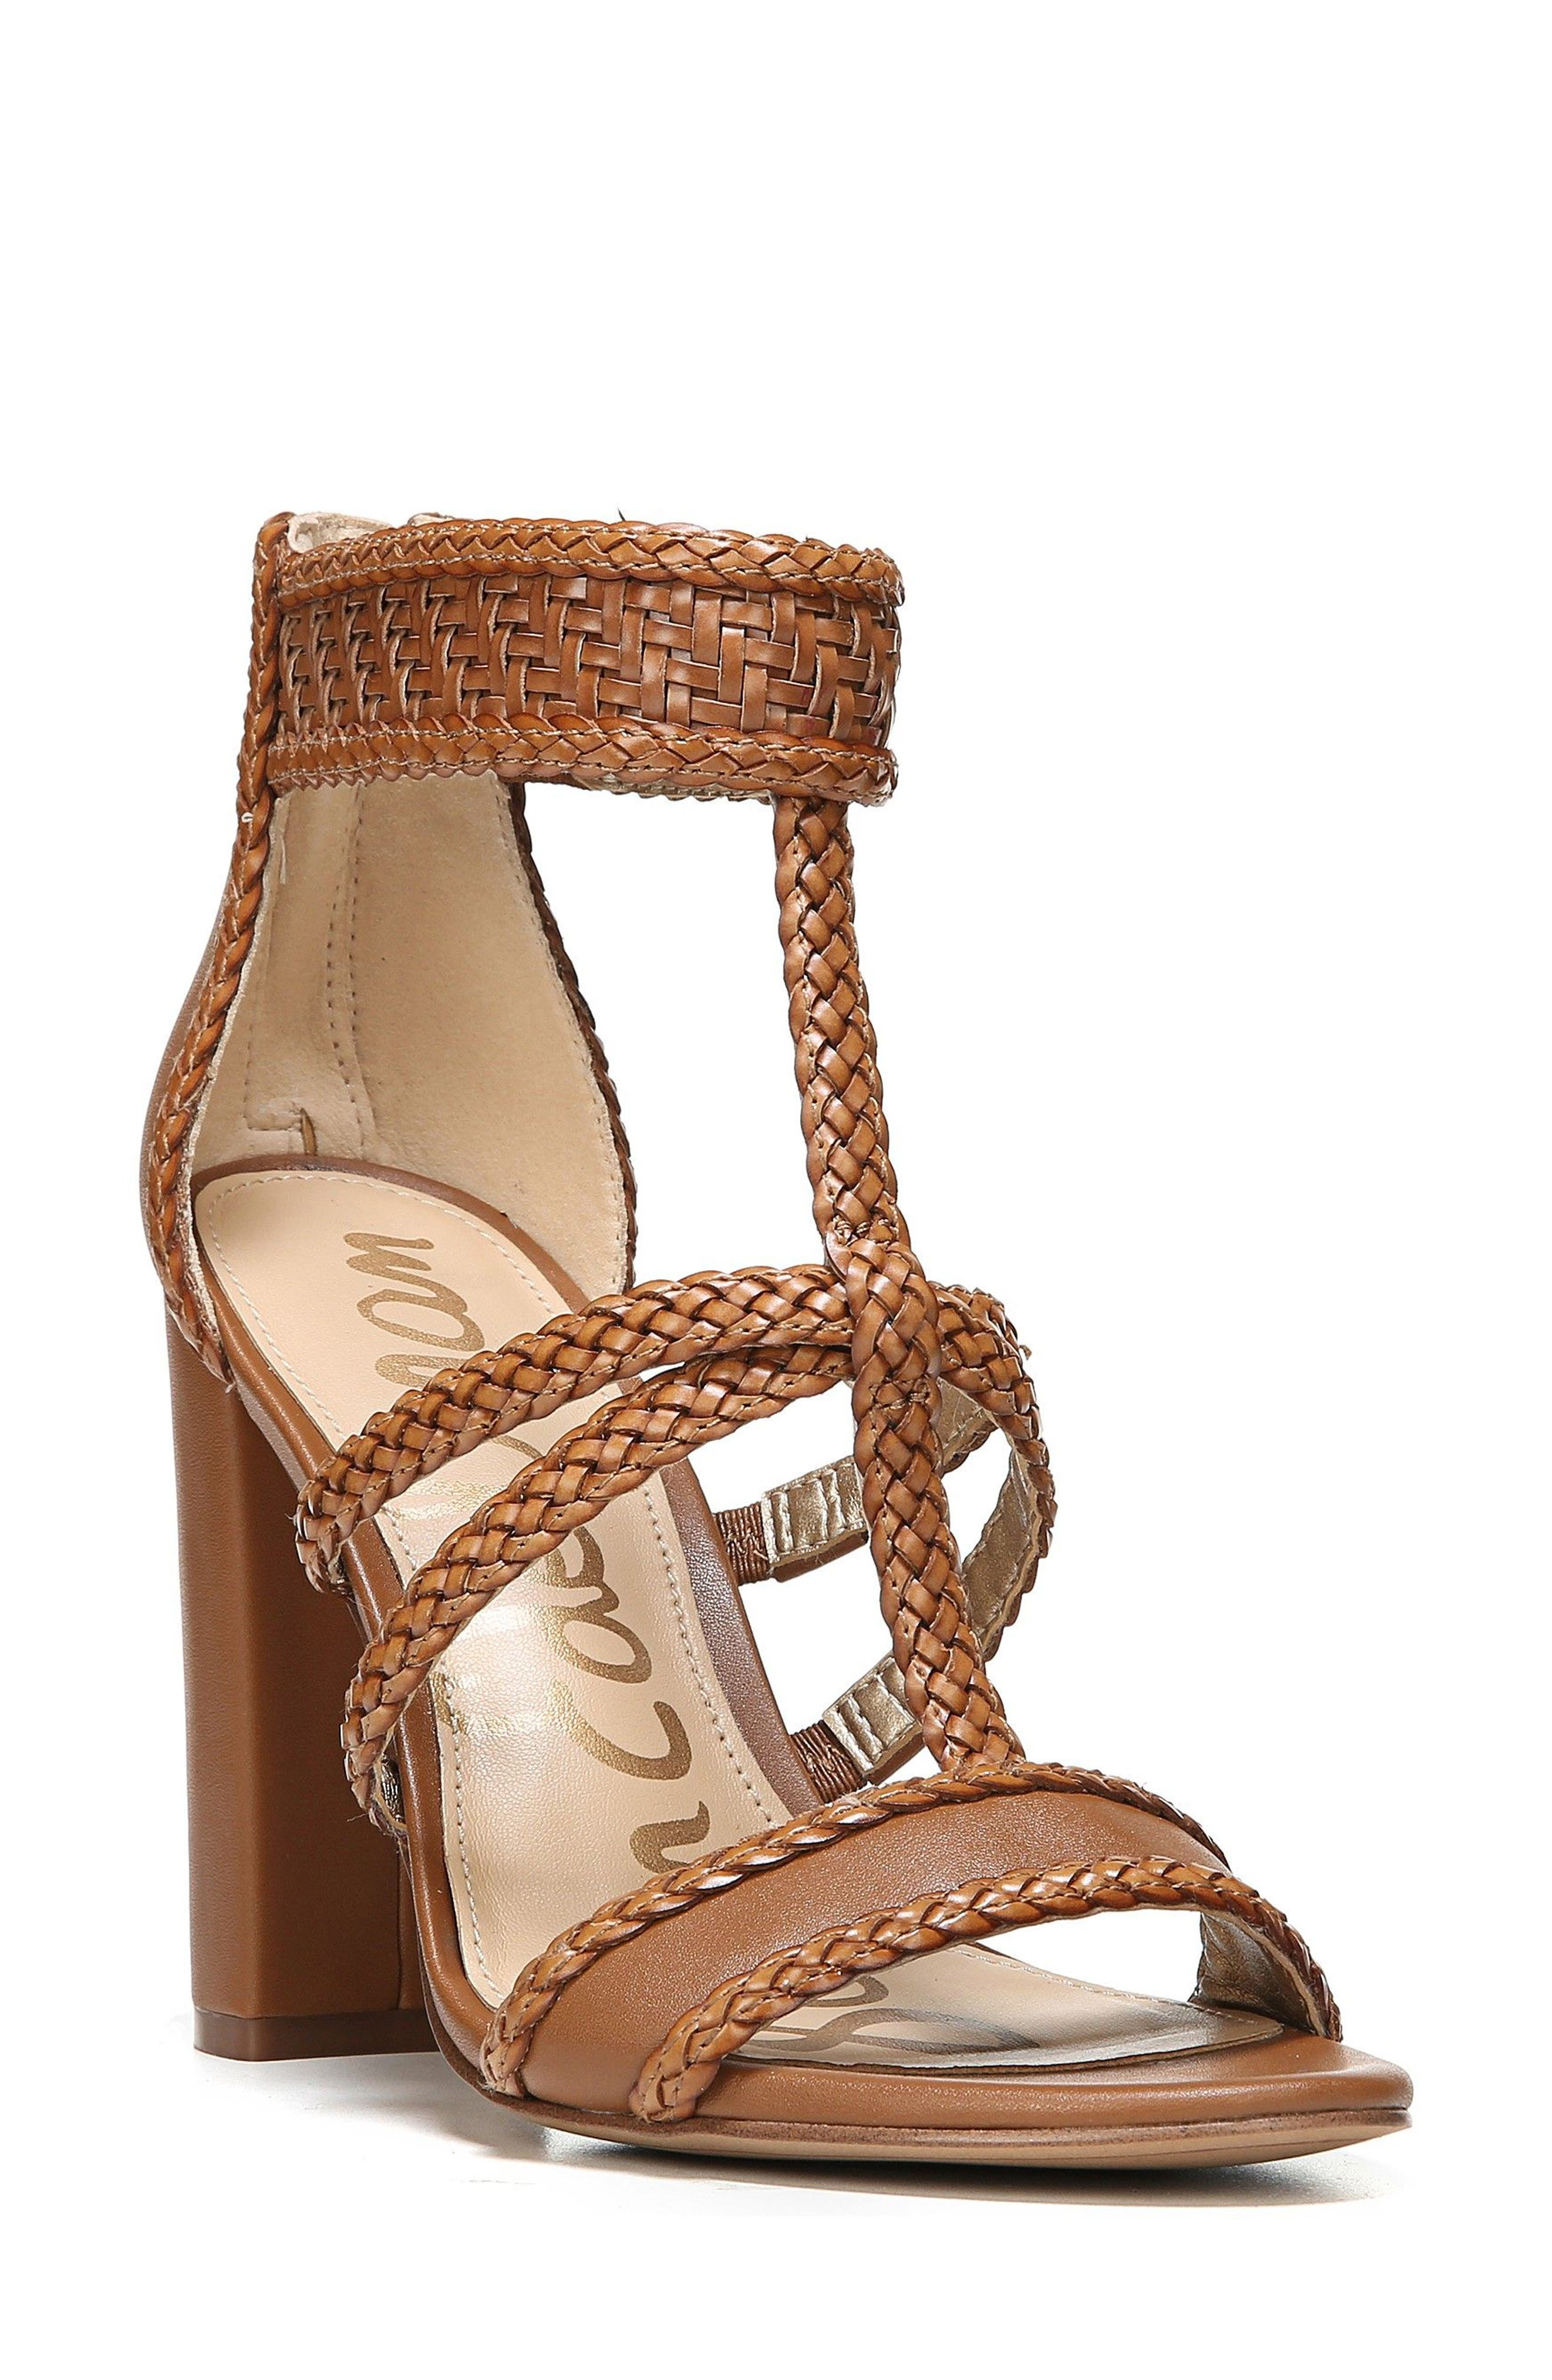 Yordana Woven T-Strap Sandal,                         Main,                         color, Saddle Weave Leather